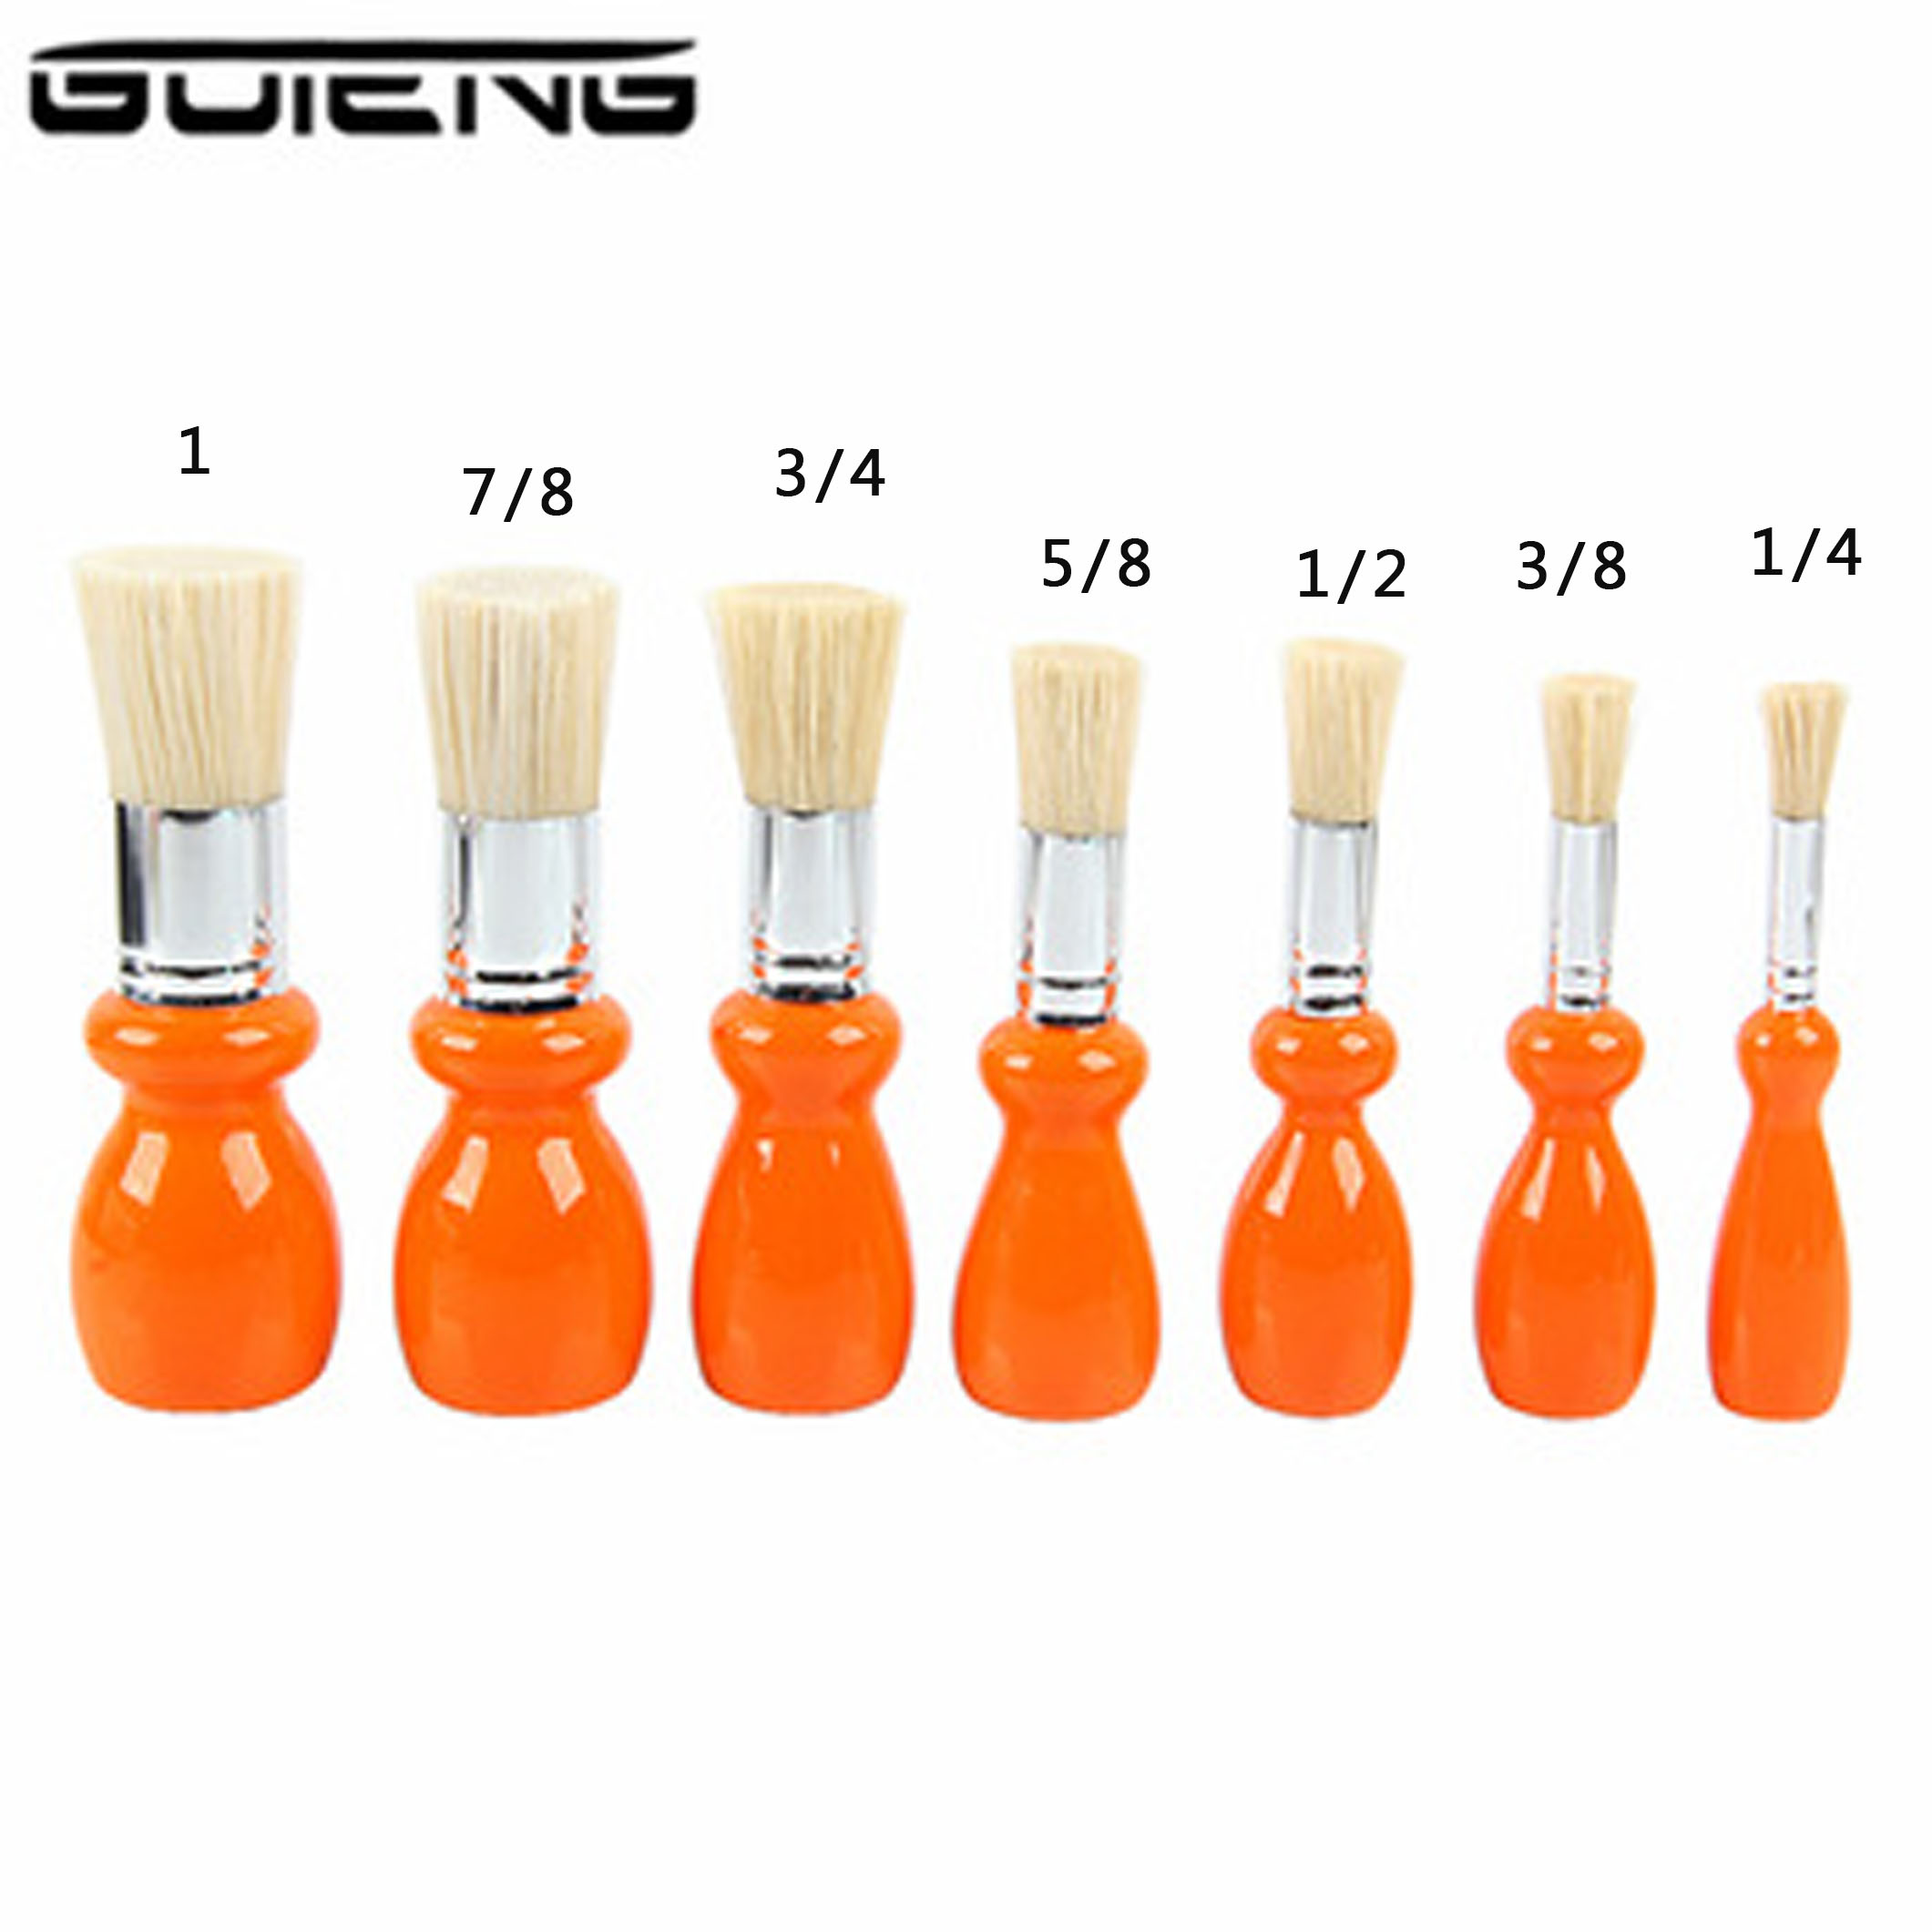 Guteng Bristle Paint Brush Wooden Handel Round Pig Hair Brushes For Watercolor Oil Gouache Acrylic Painting School Offuce Supply